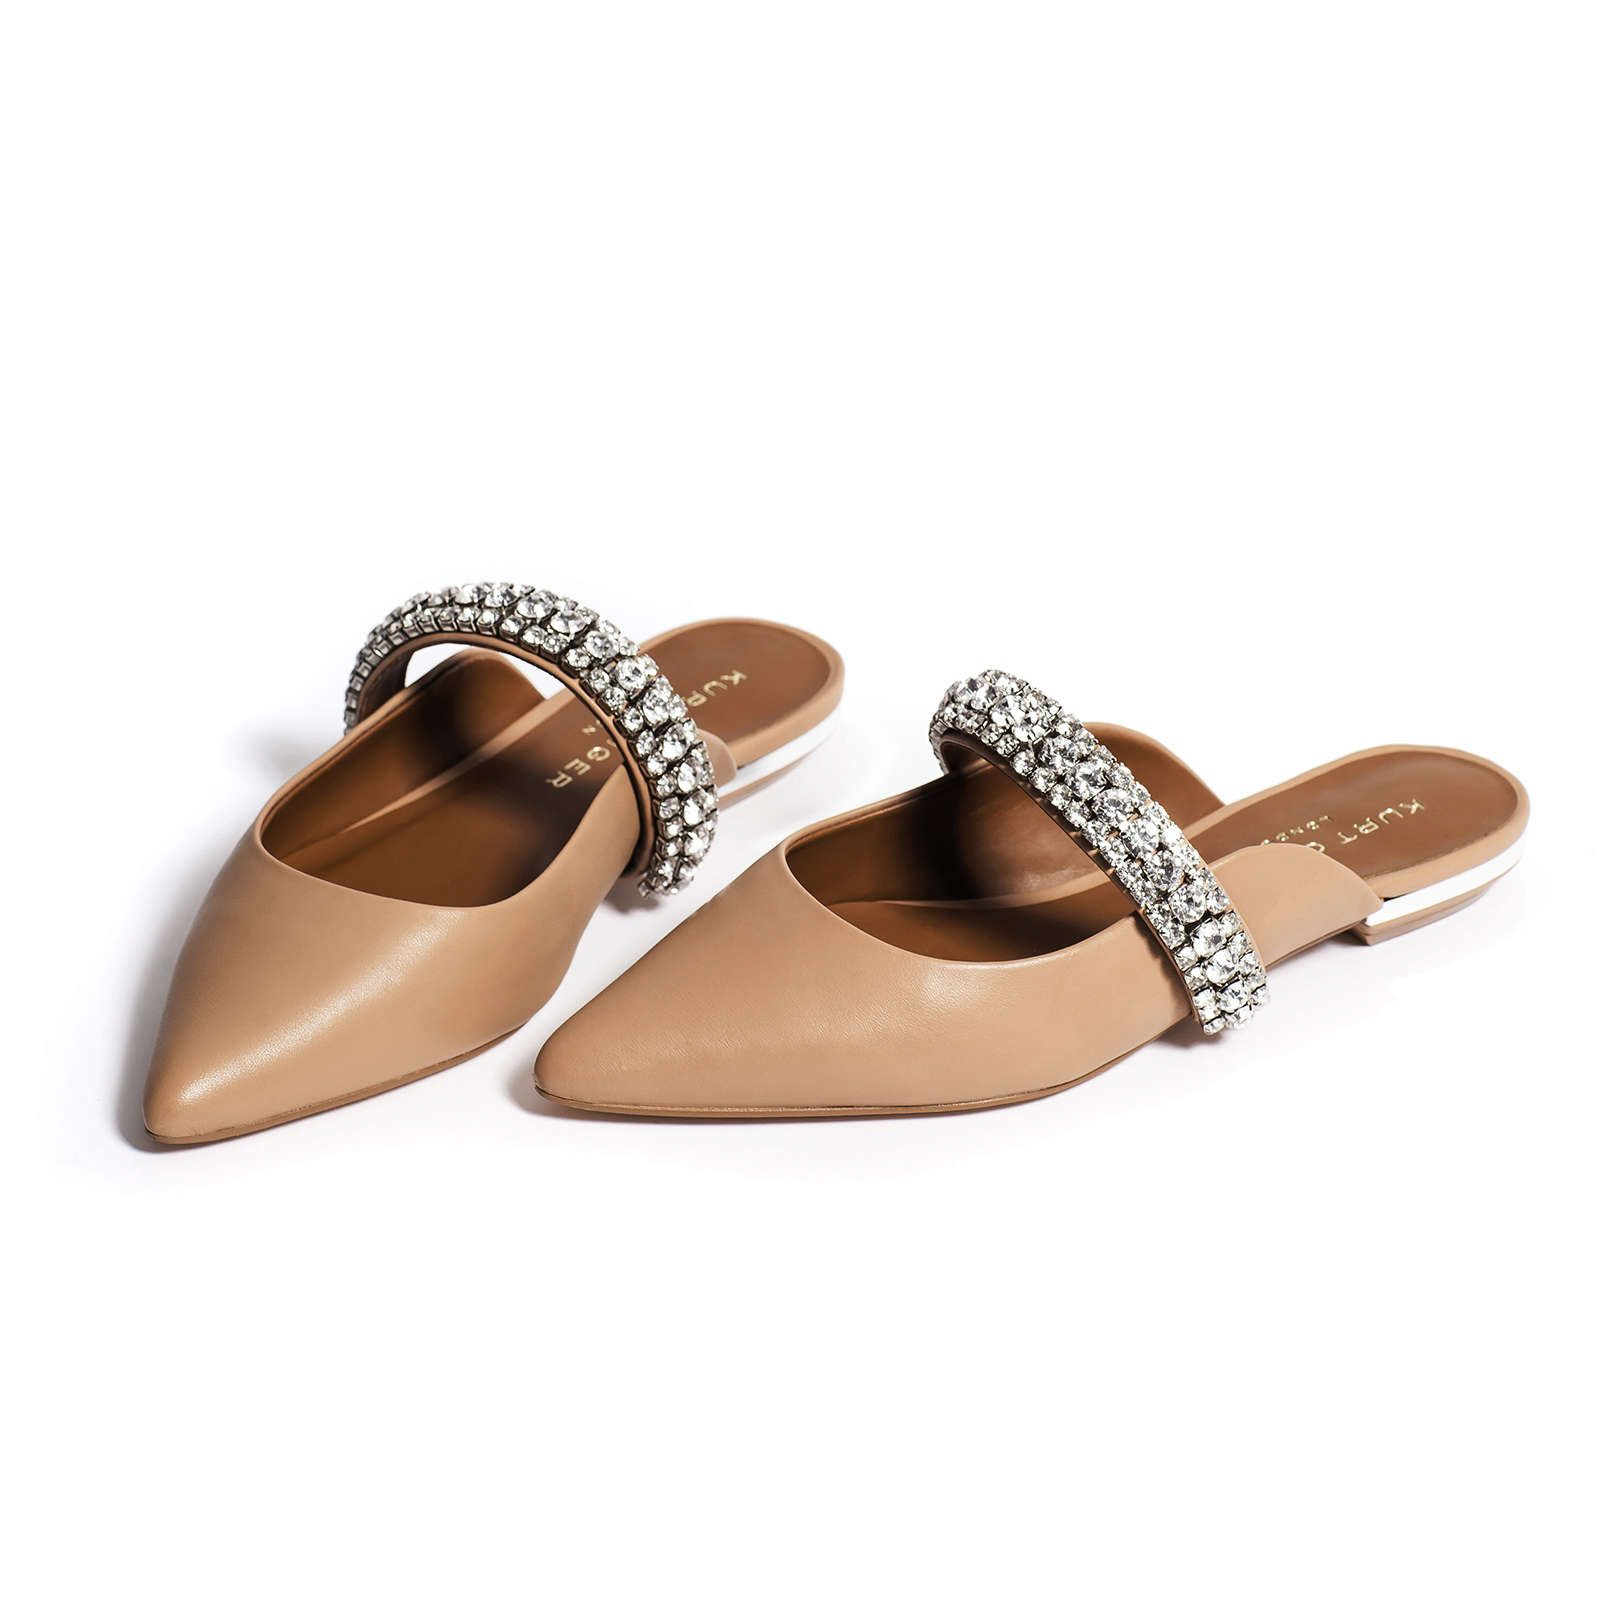 55232e6c2 PRINCELY Leather Mules, White Leather, Kurt Geiger, London, Flats, Sandals,